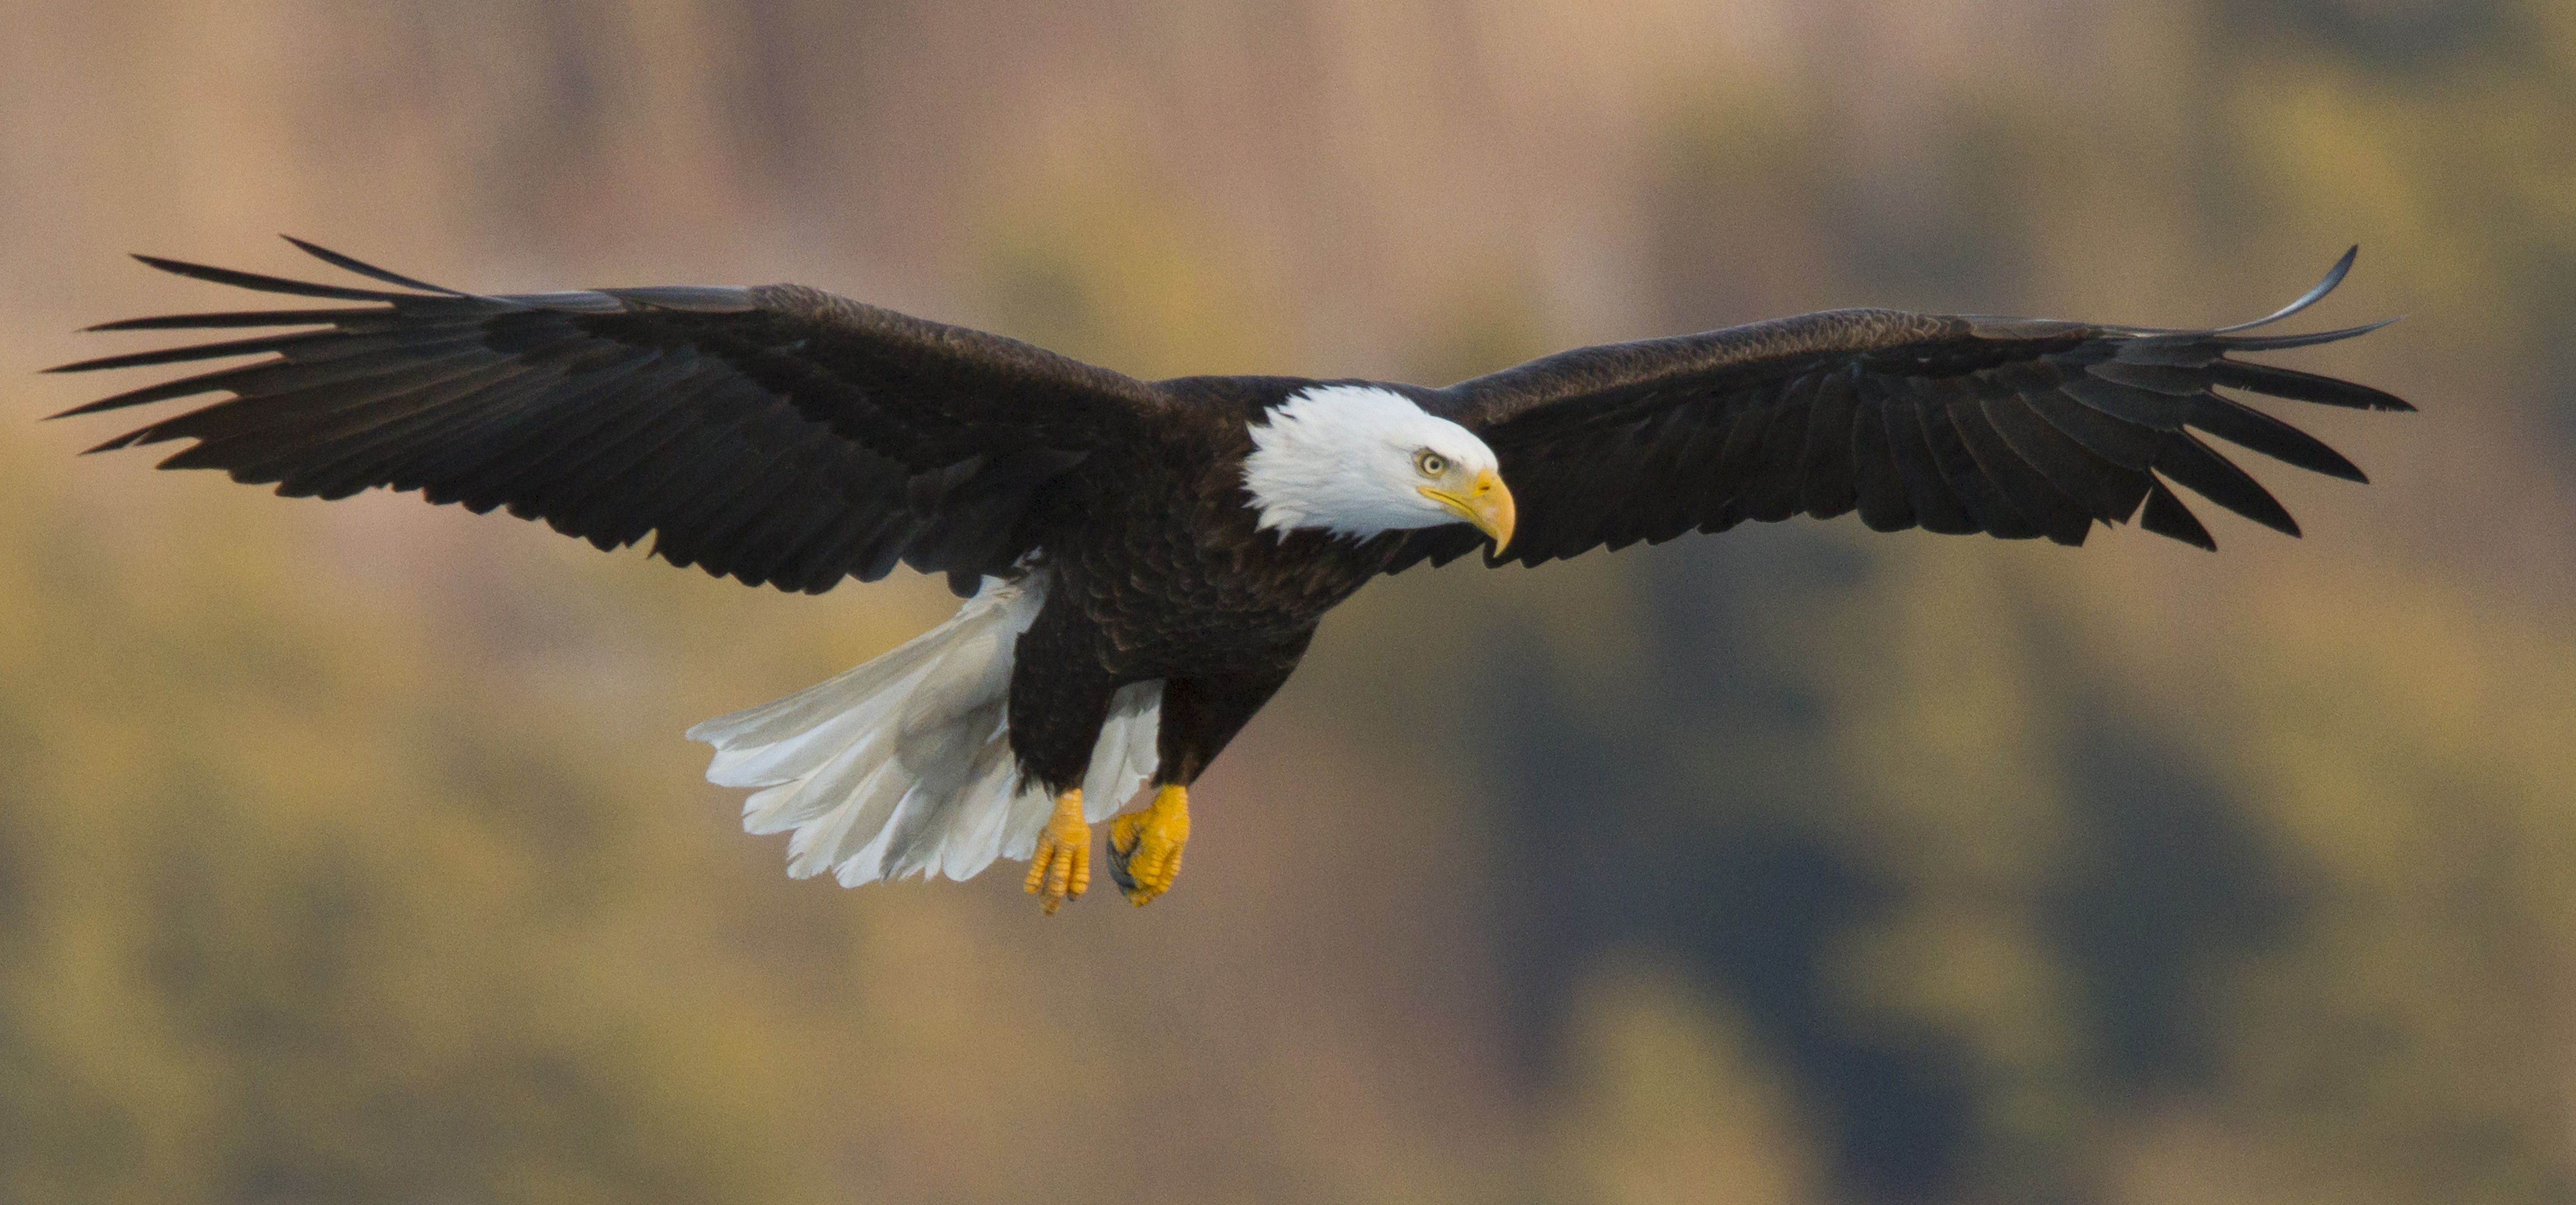 The Eagle Is And Always Has Been A Bird That Fascinates Us It S So Big Powerful Beautiful Soaring Across Sky With Such Ease